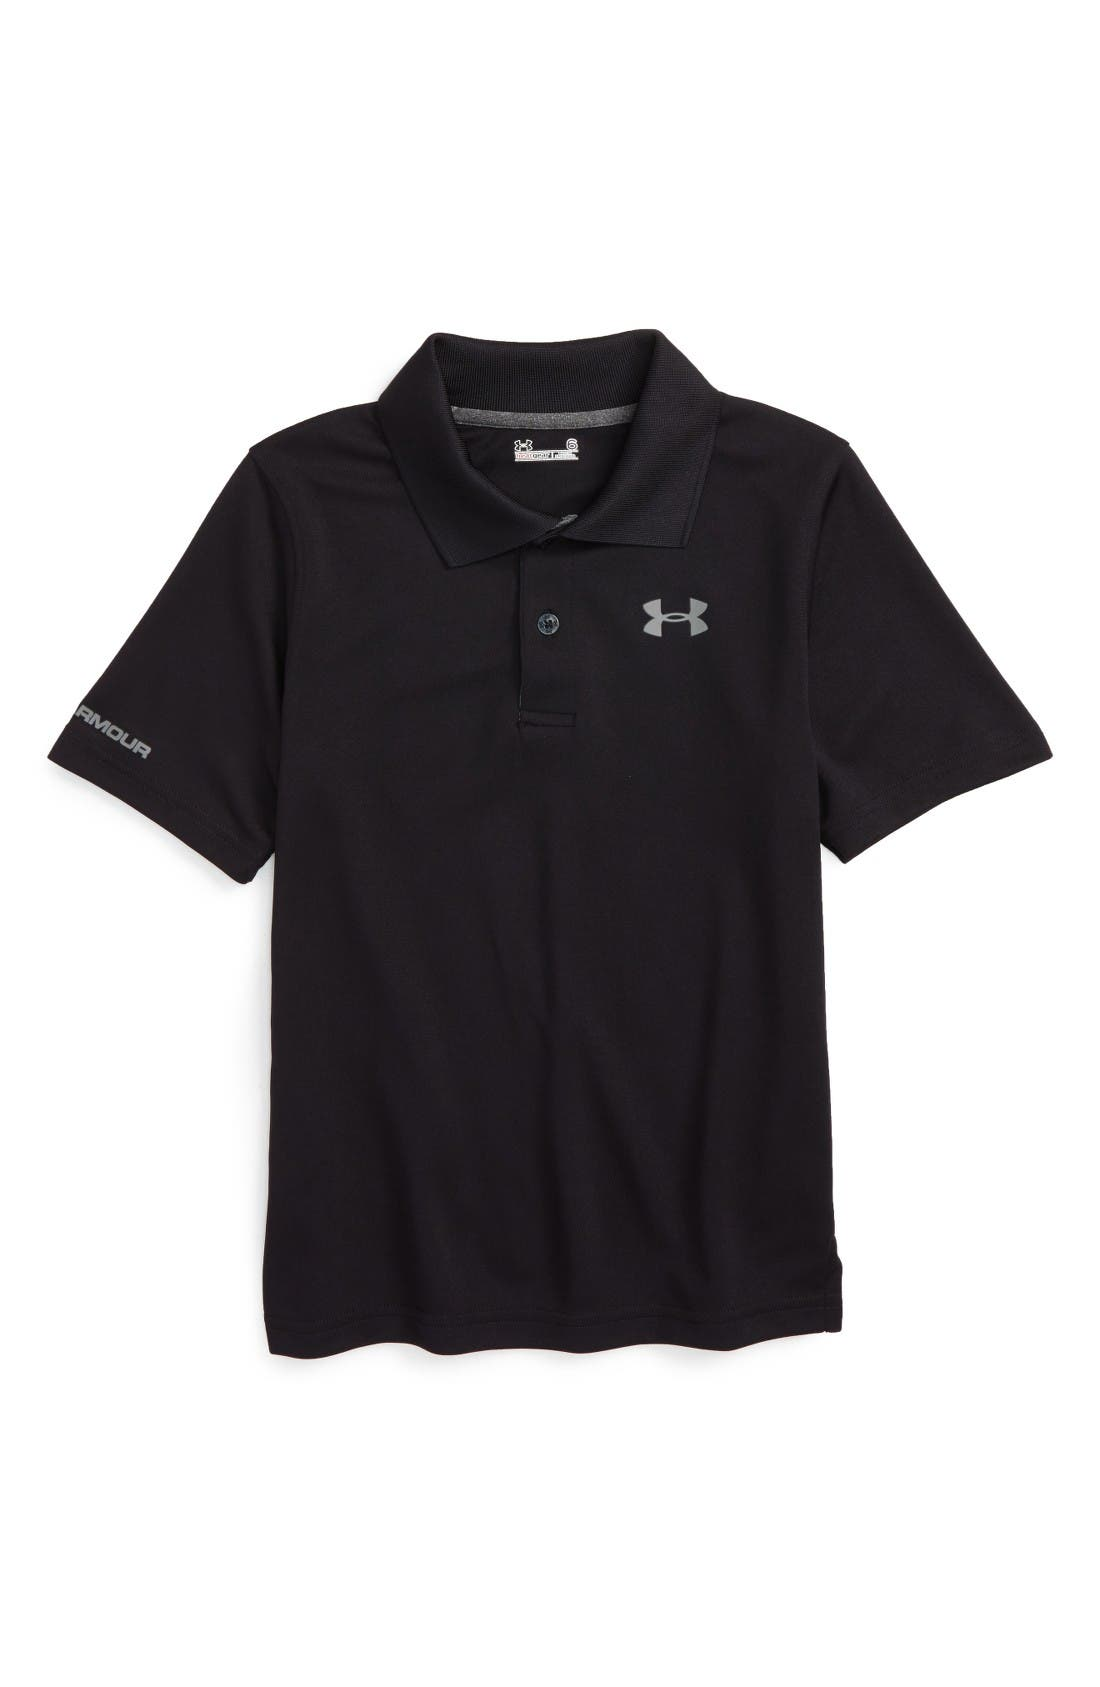 Match Play HeatGear<sup>®</sup> Polo,                             Main thumbnail 1, color,                             Black